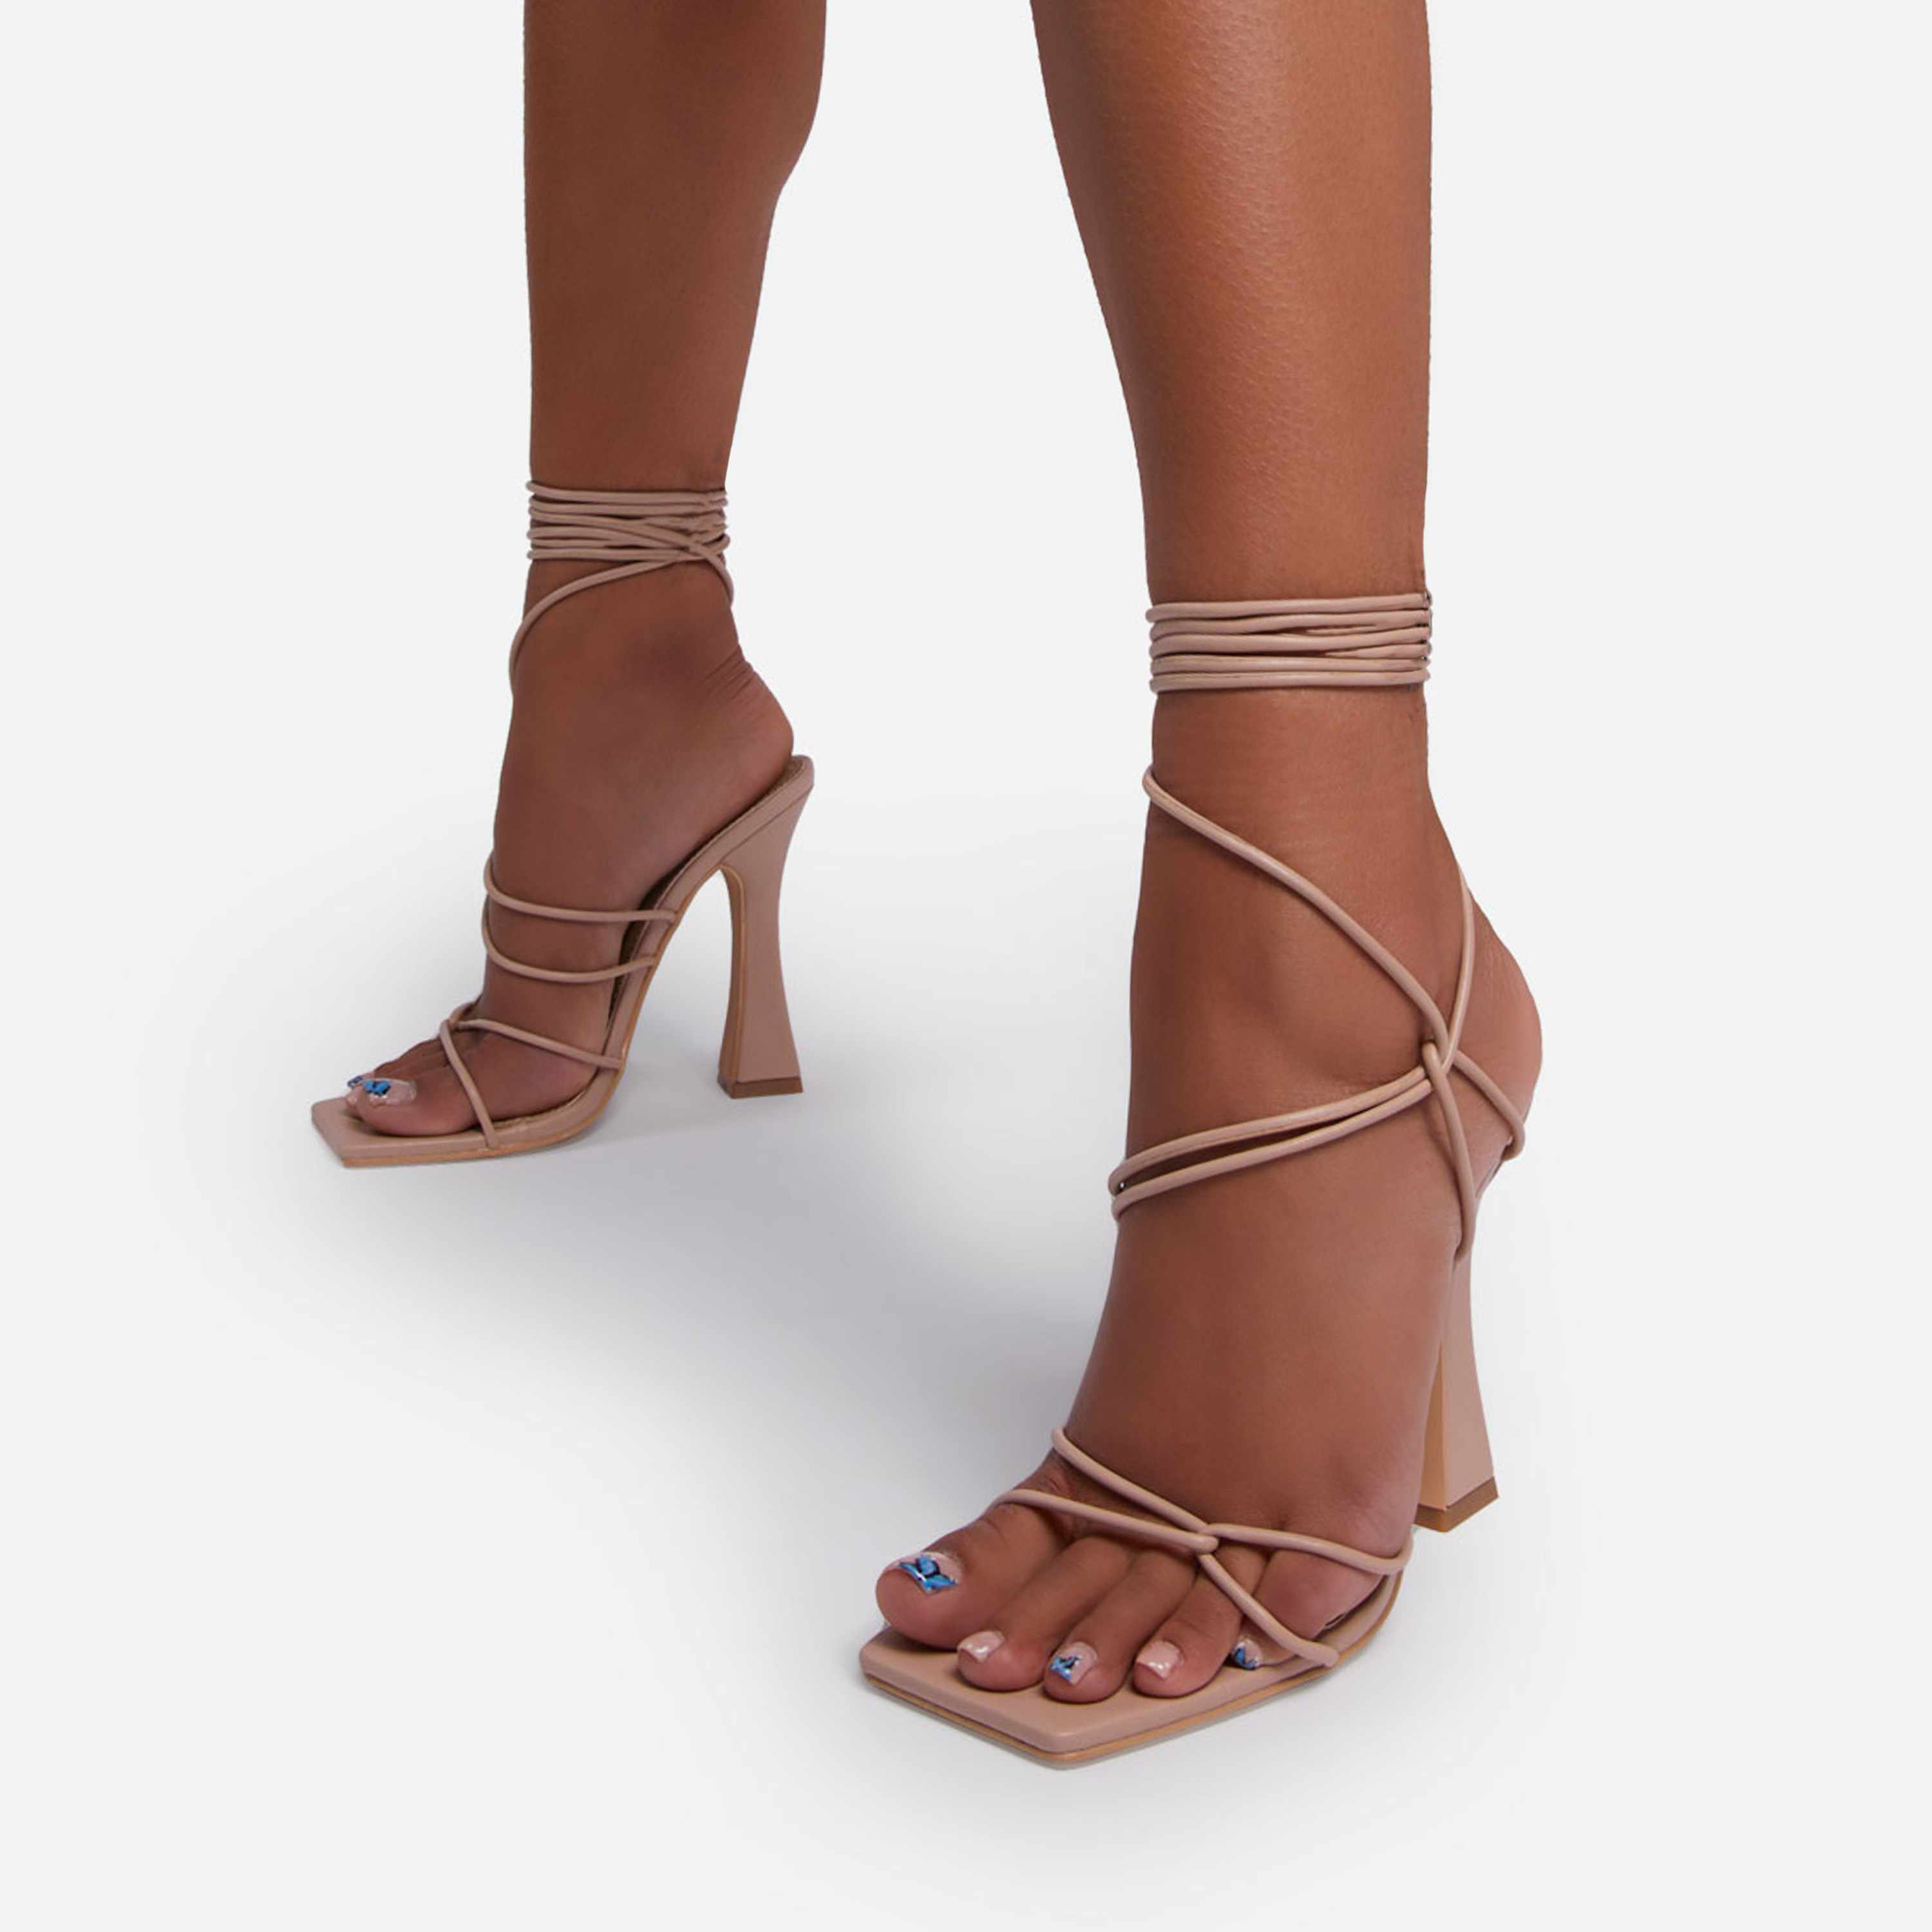 Seduce Lace Up Strappy Square Toe Curved Block Heel In Nude Faux Leather